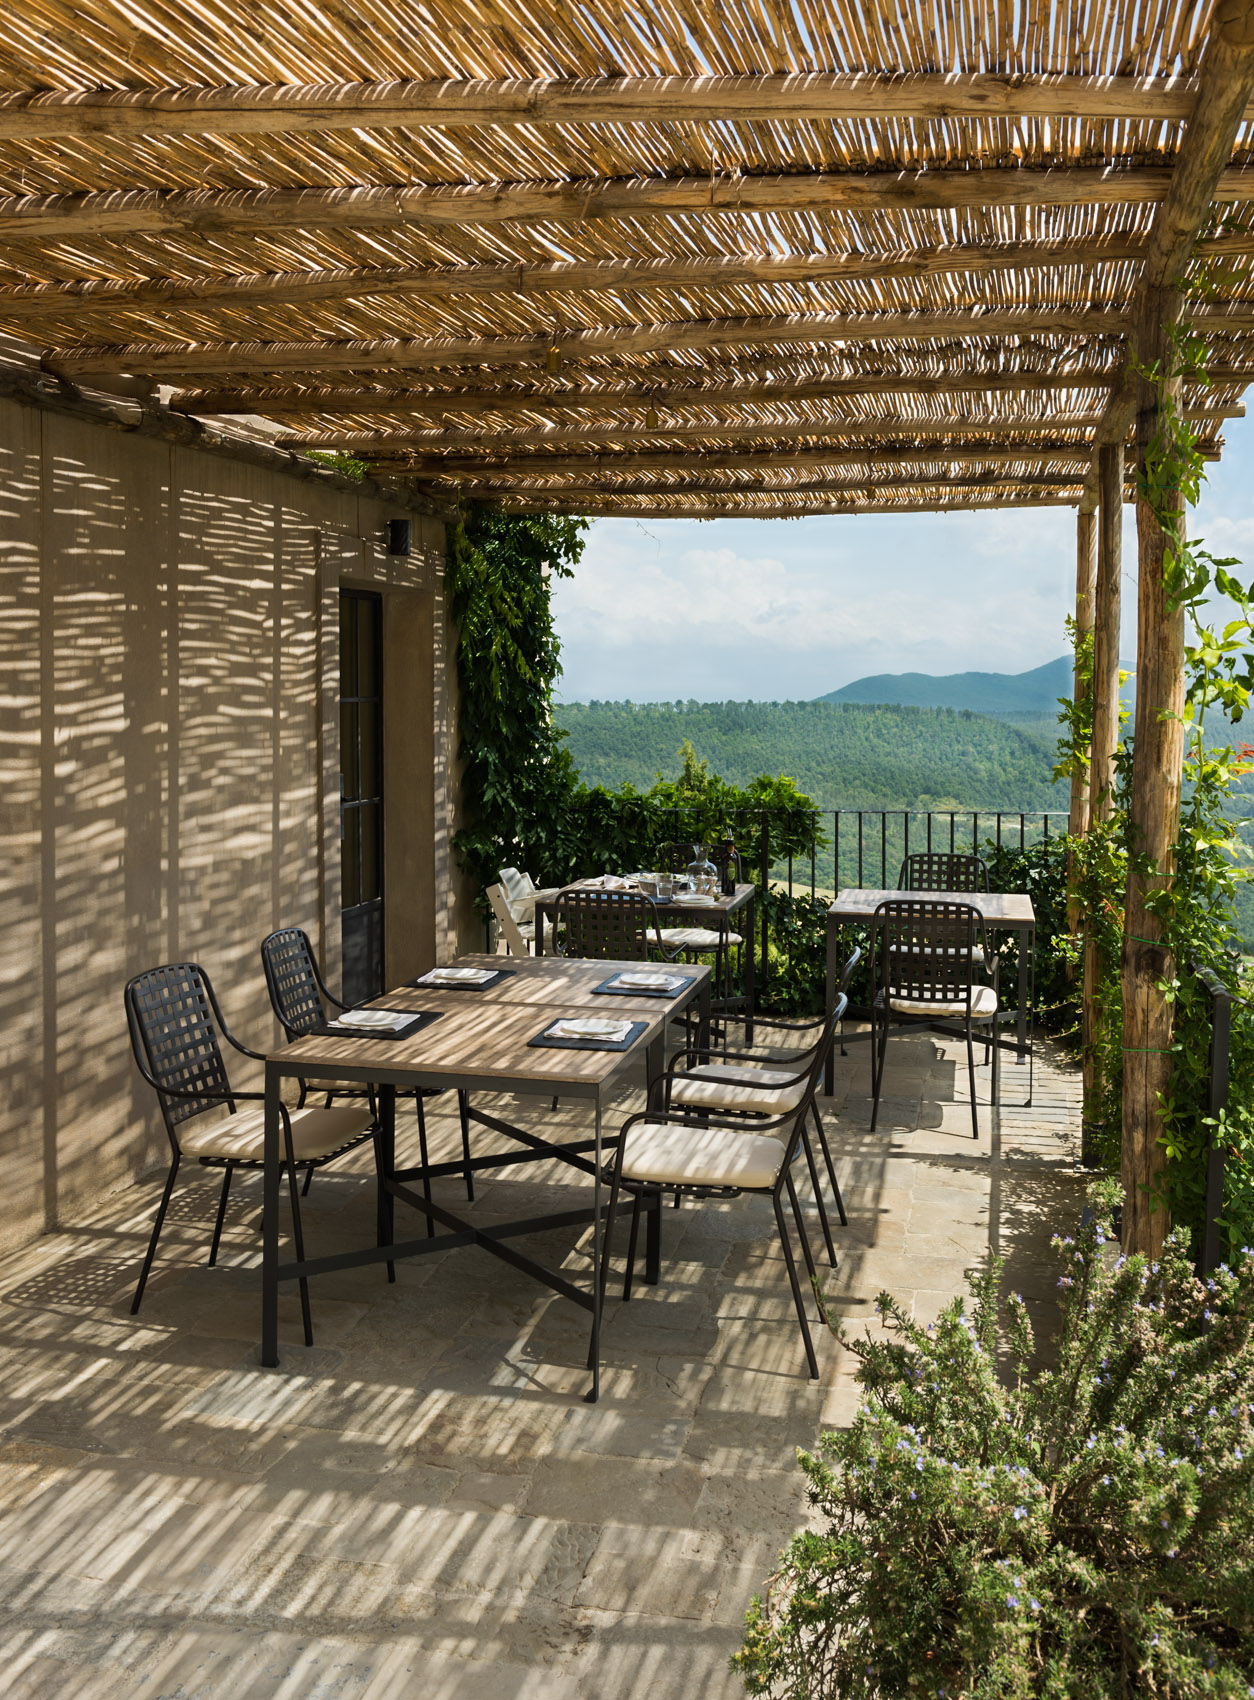 140624-148 Deck with dining table at Monteverdi, Tuscany